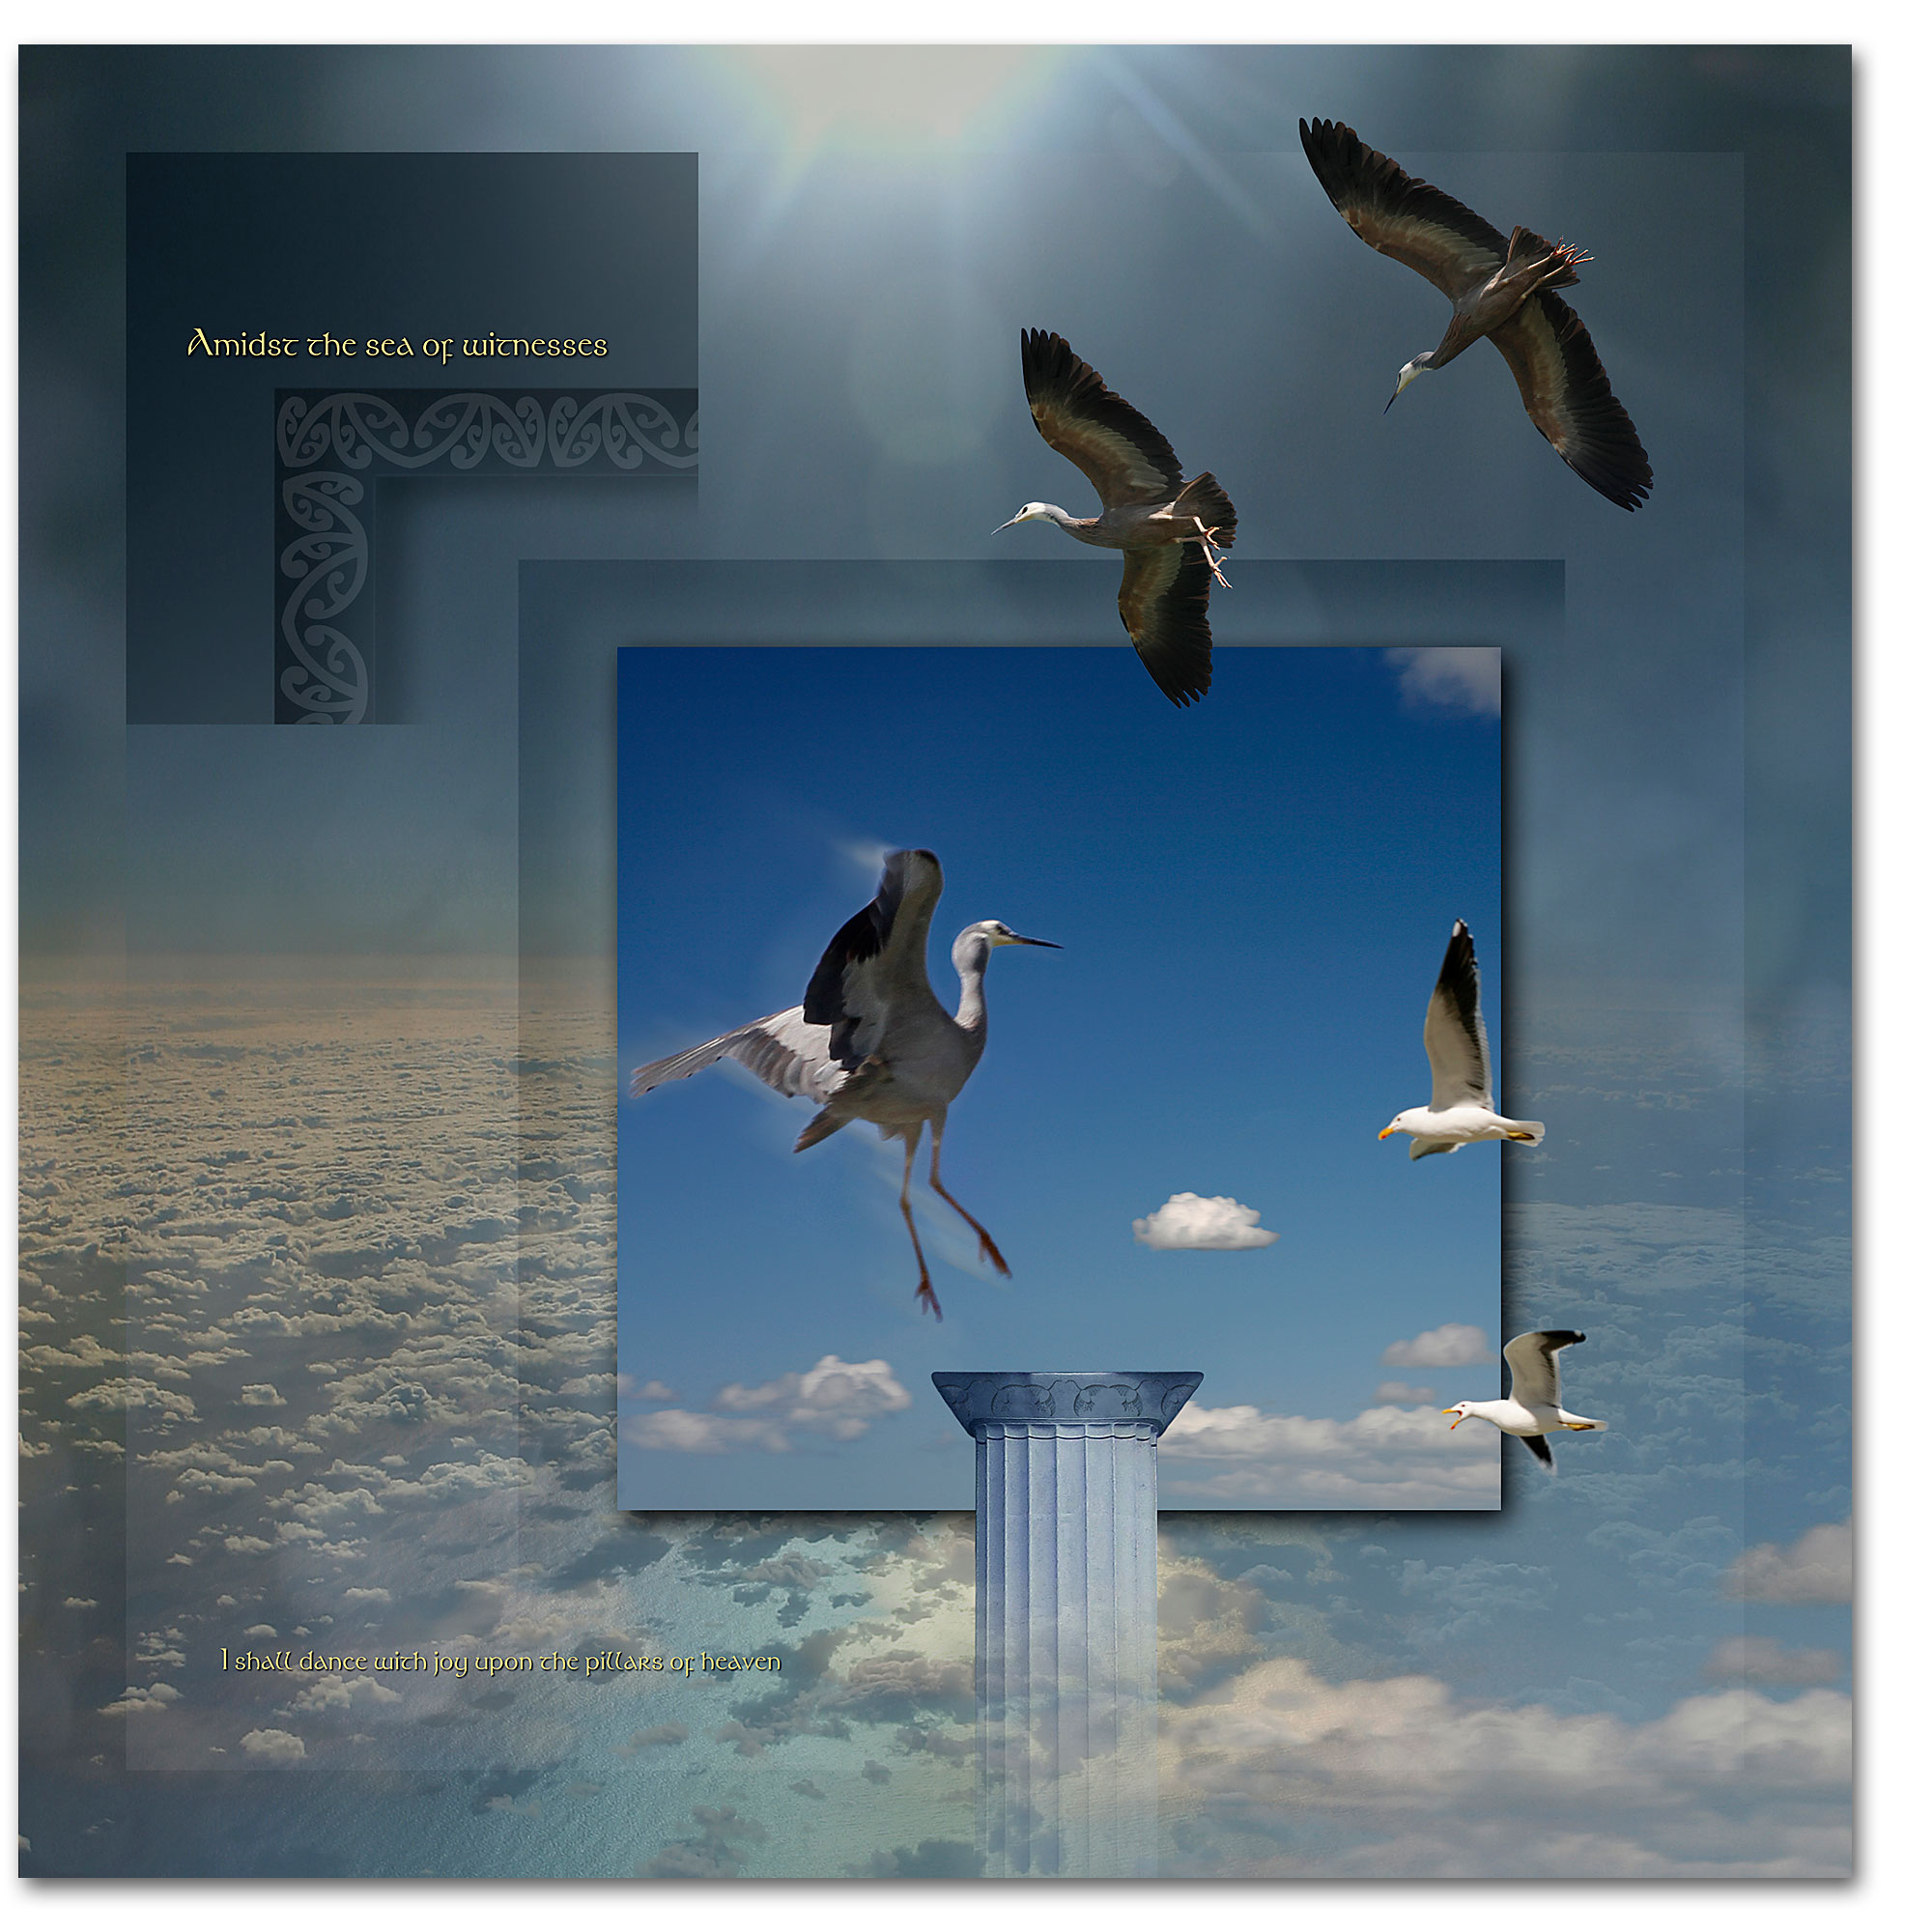 Herons in flight. A surreal story about joy and happiness watching a family grow.